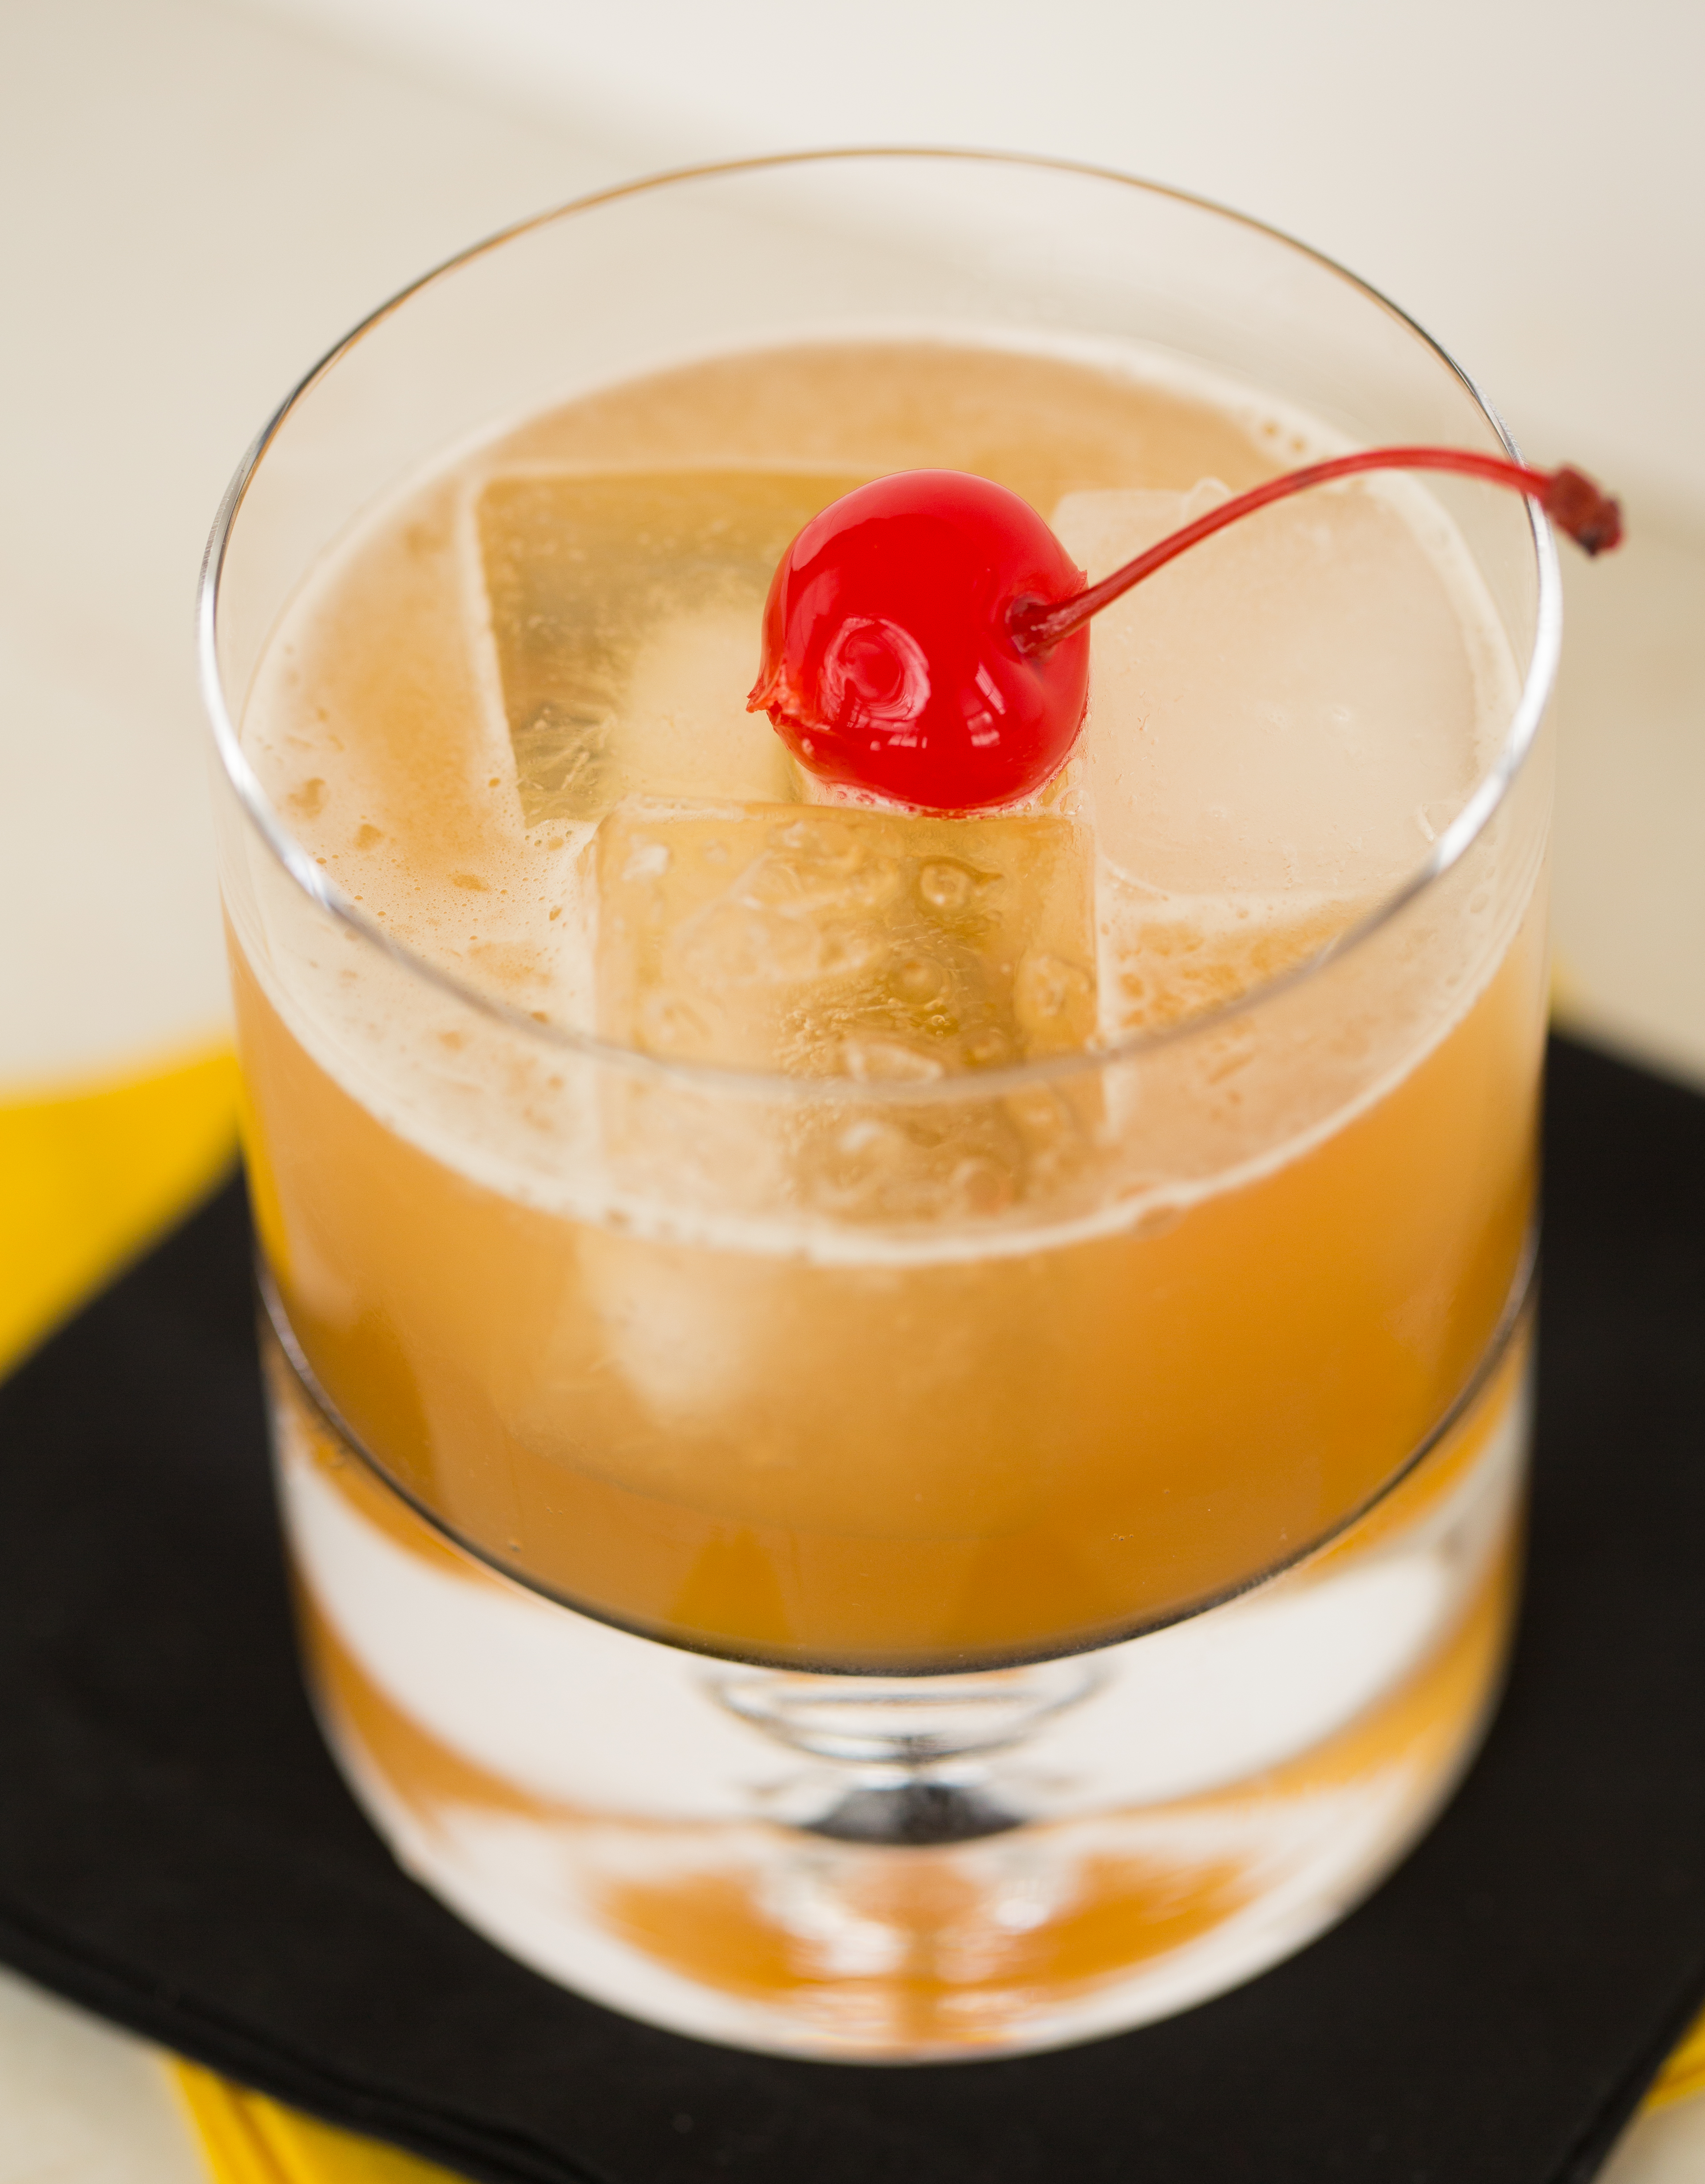 Cherry Juice In Old Fashioned